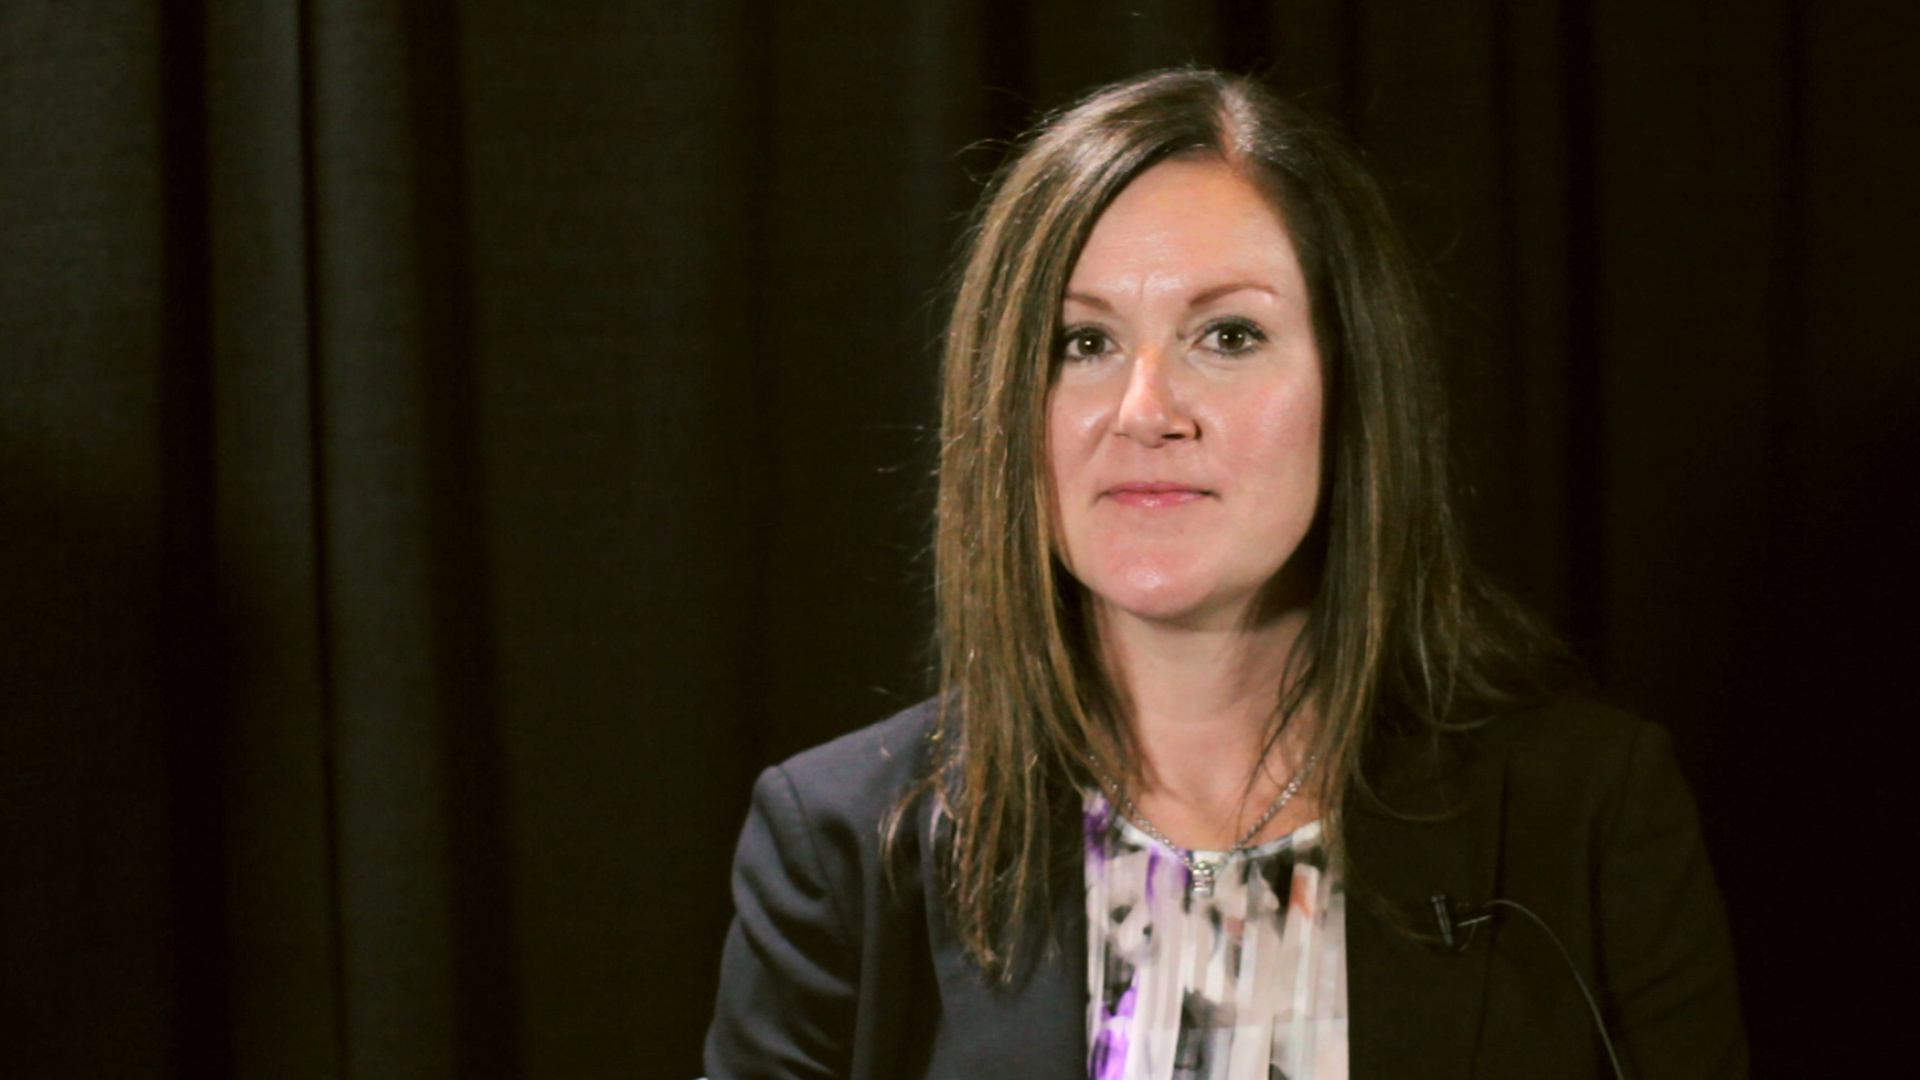 Video preview: EFI's Charlotte Tueckmantel on Marketing Technology and New Business Models